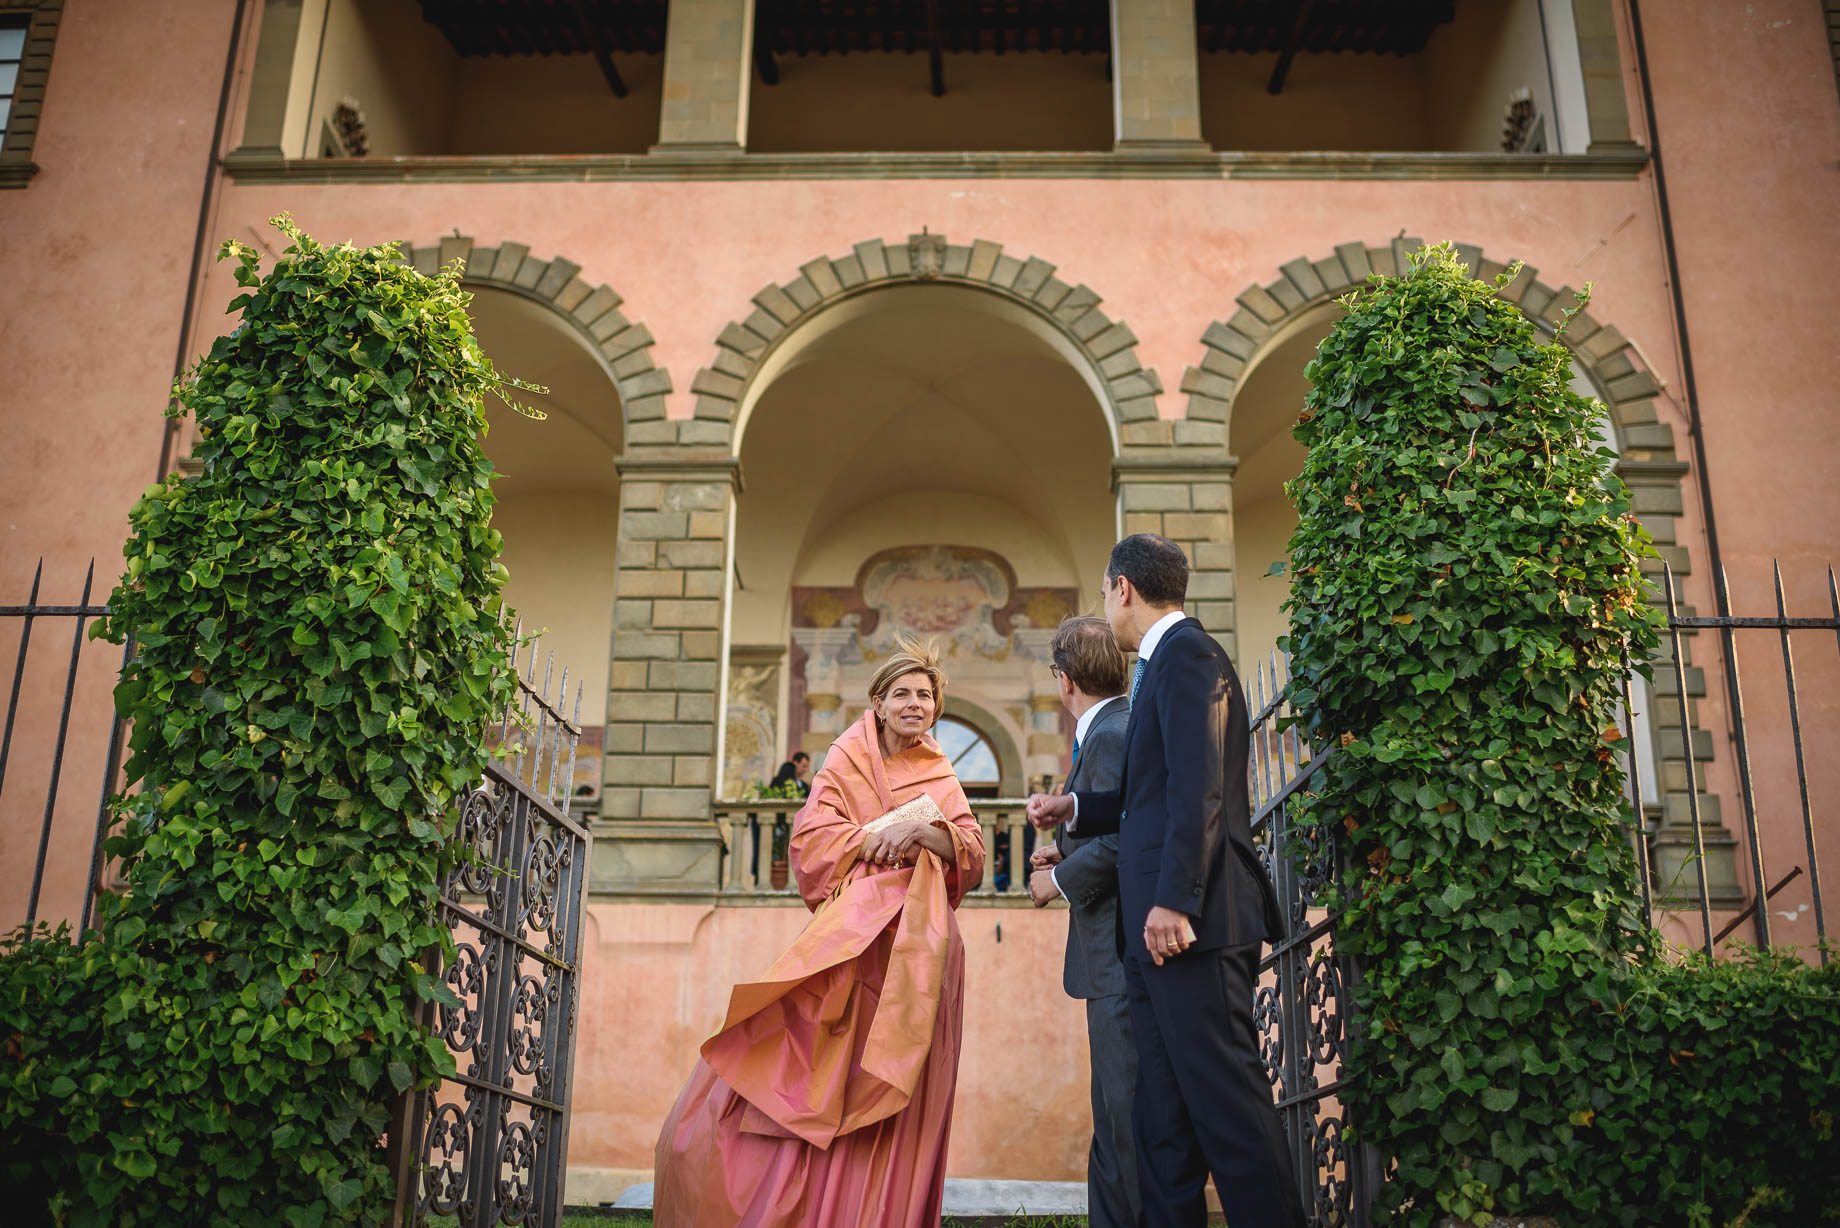 Tuscany wedding photography - Roisin and Moubin - Guy Collier Photography (160 of 251)